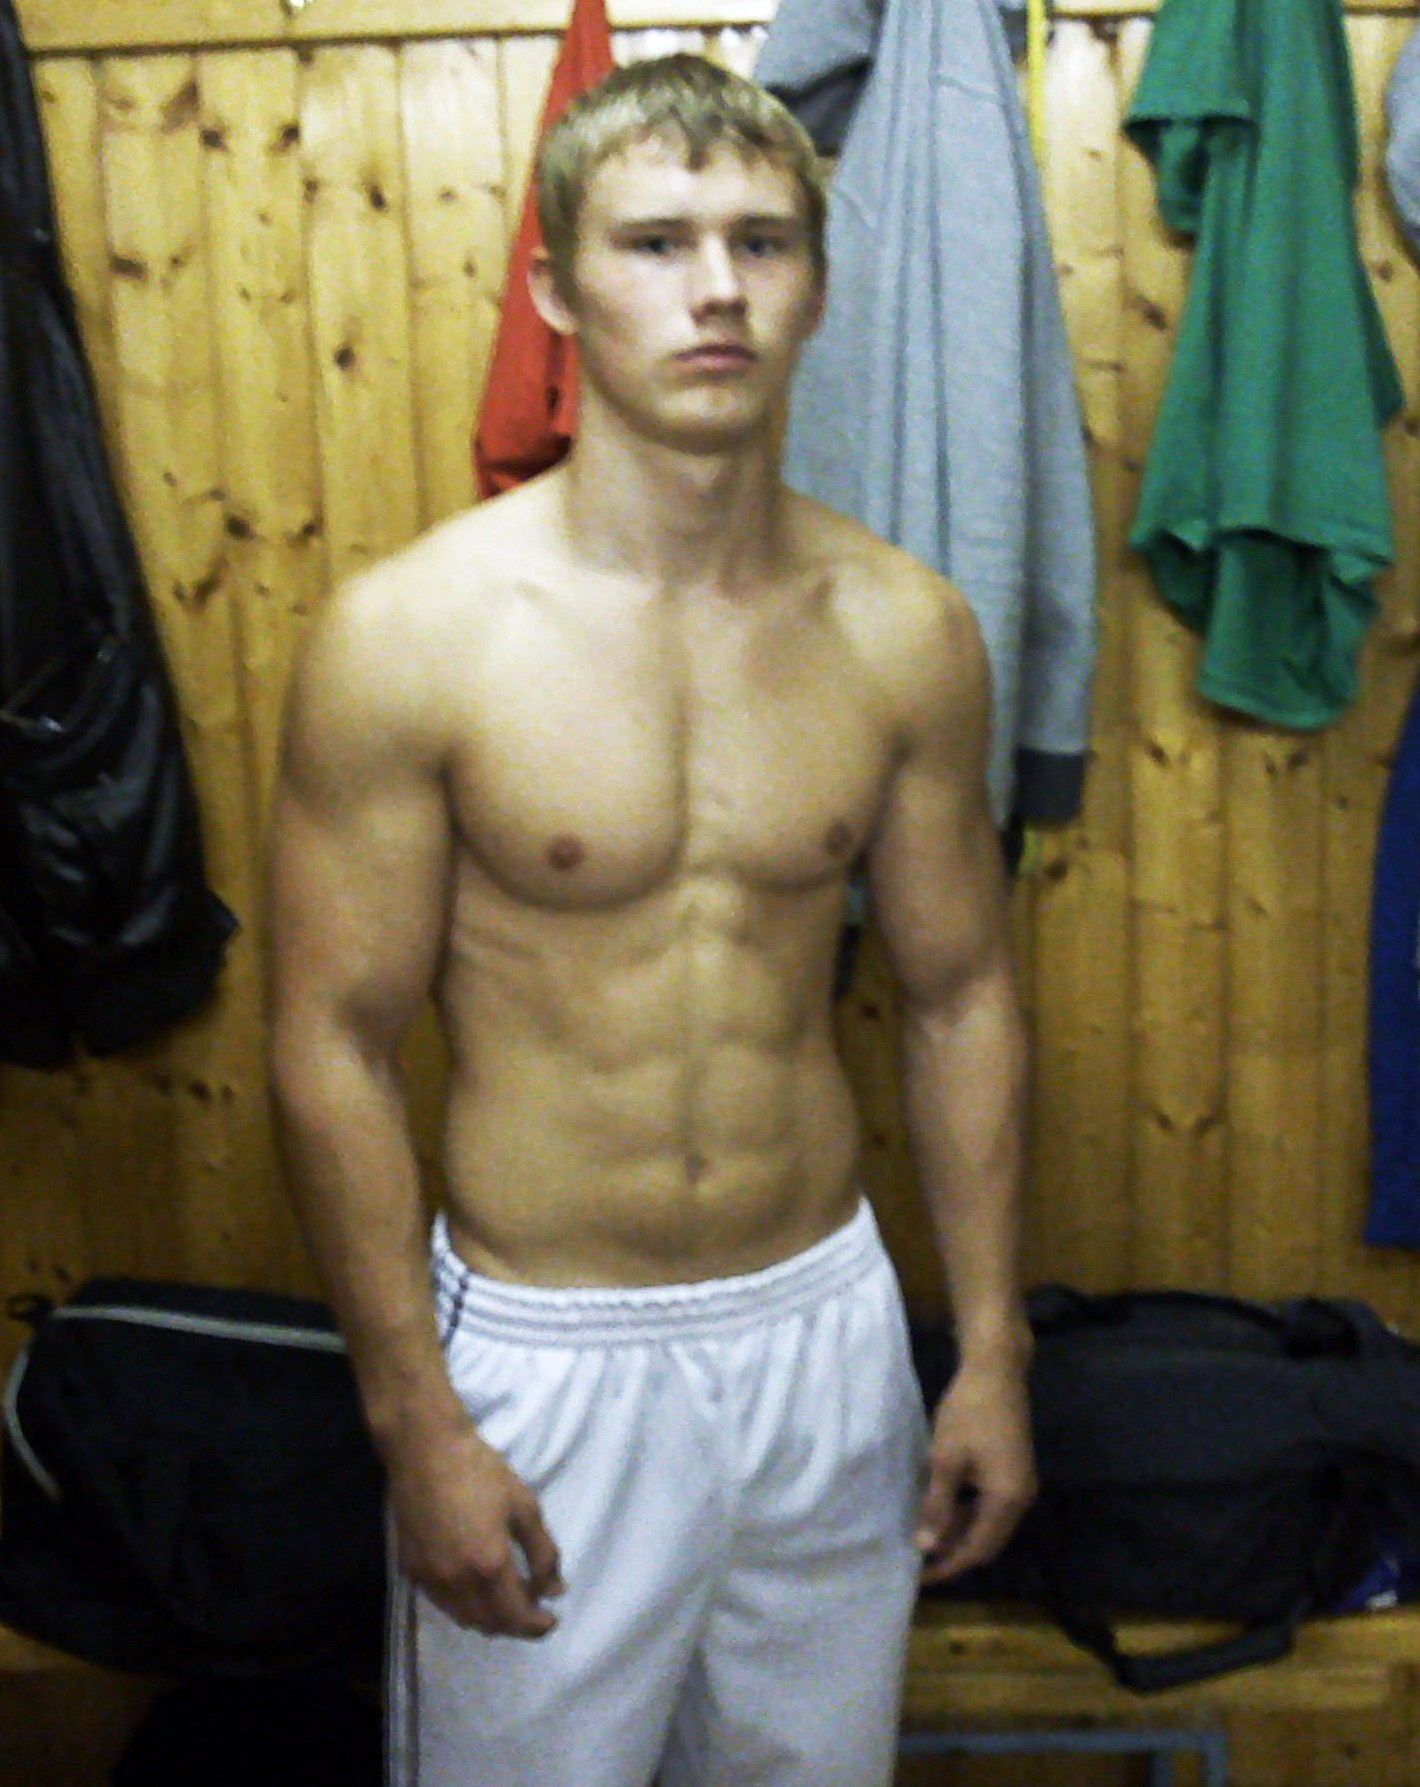 76kg Male with 8% Body Fat